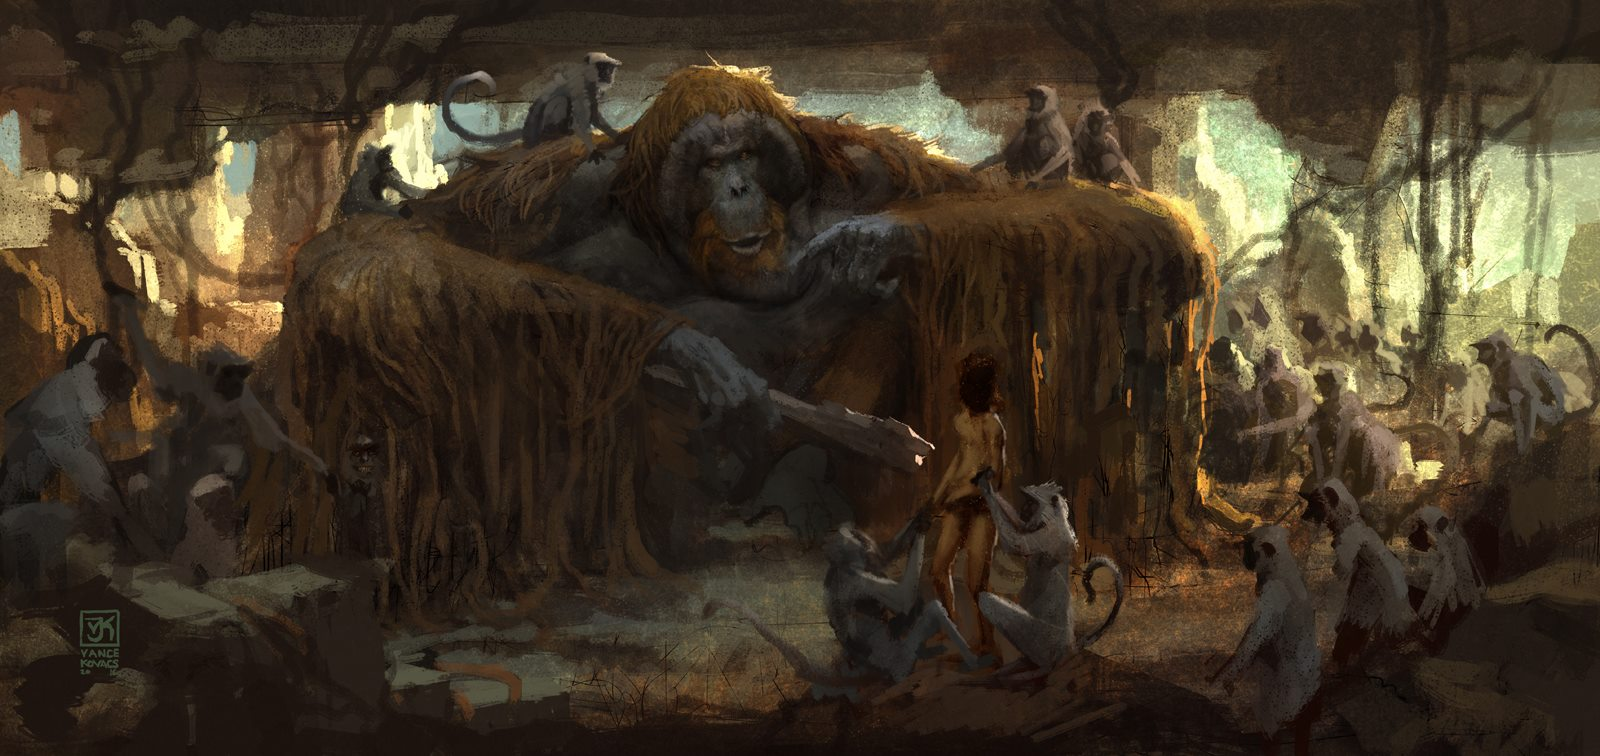 The Jungle Book Concept Art By Vance Kovacs Concept Art